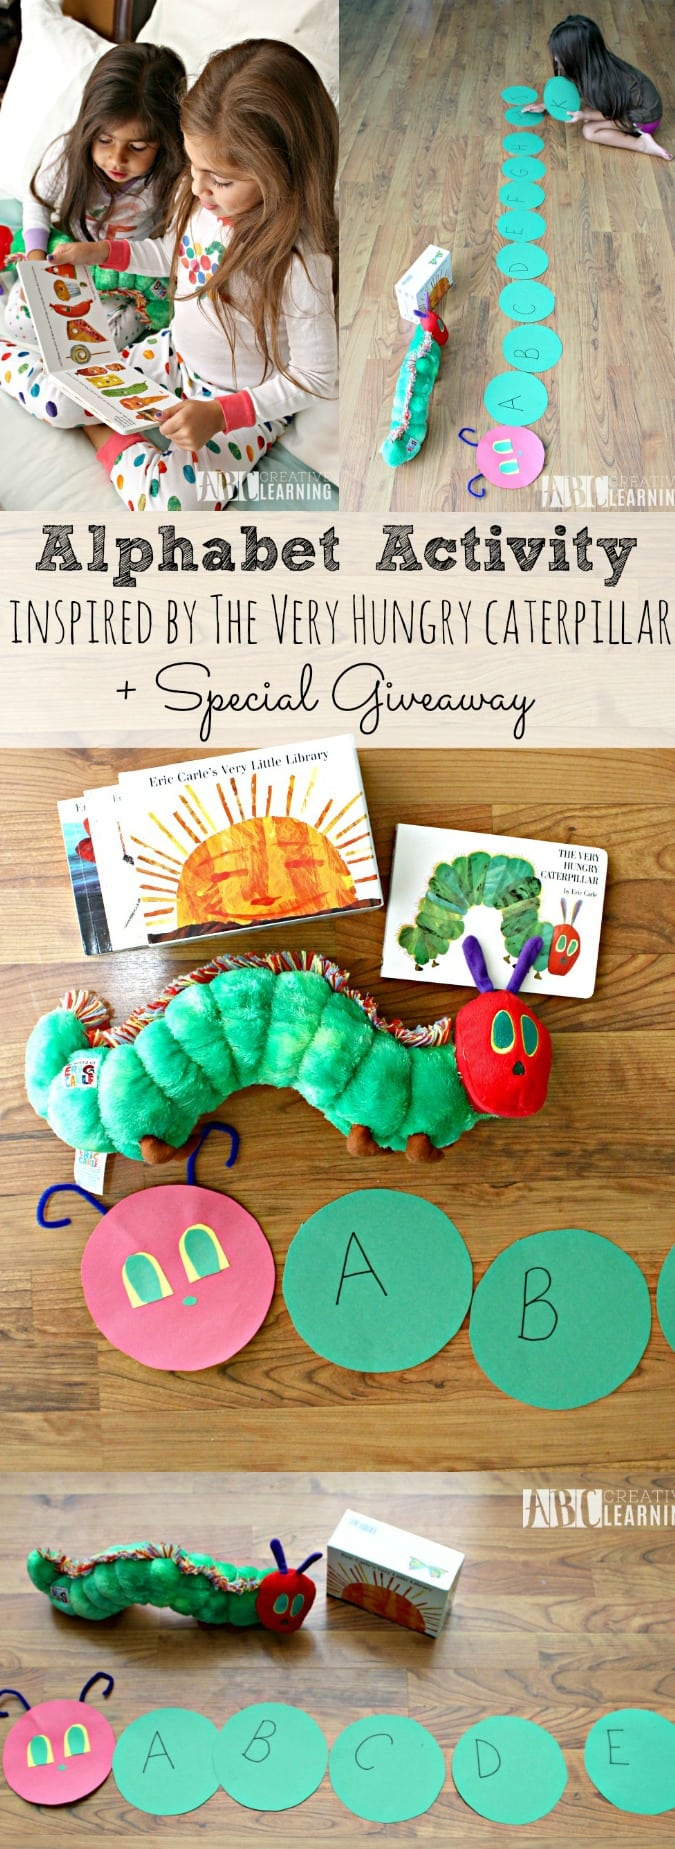 Alphabet Activity Inspired by The Very Hungry Caterpillar + Giveaway - simplytodaylife.com